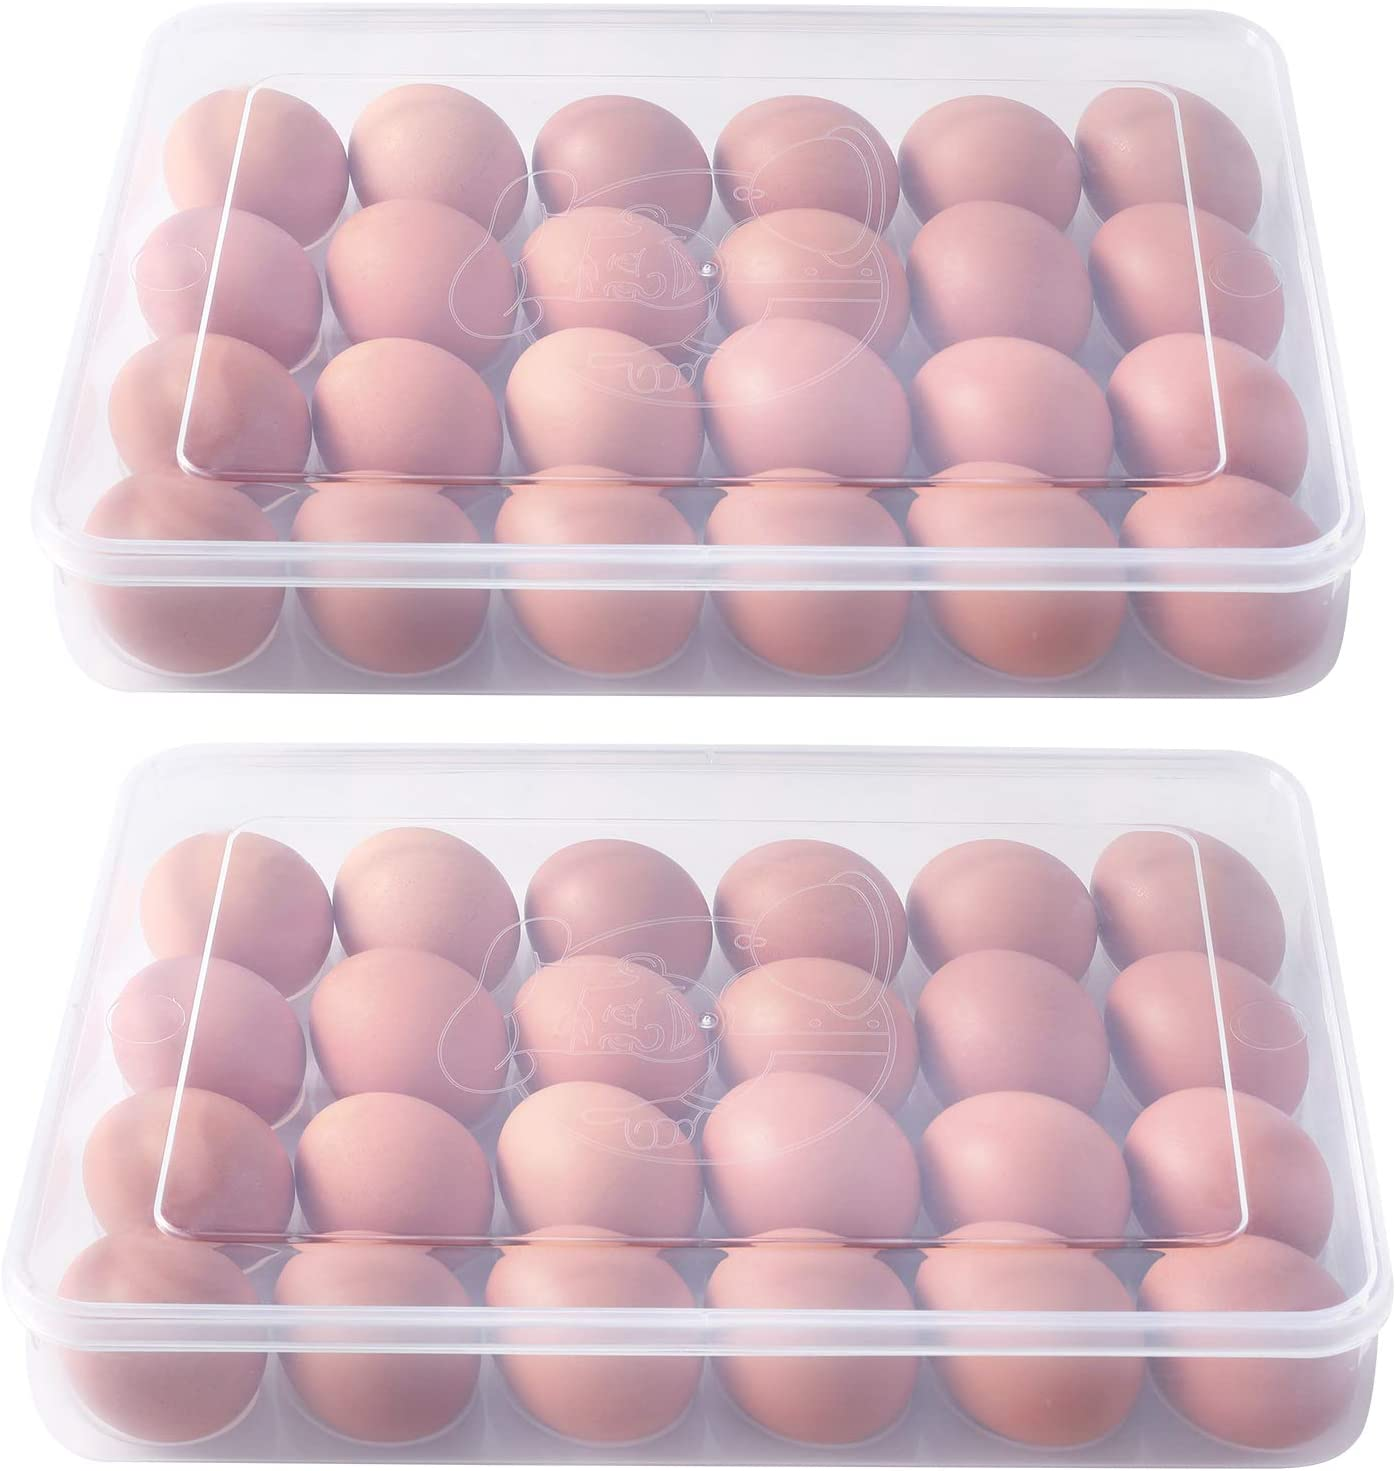 Zoymensu 2 Pack Egg Holders for Refrigerator Plastic Egg Containers with Lid Fridge Egg Tray Egg Storage Box(48 Eggs)